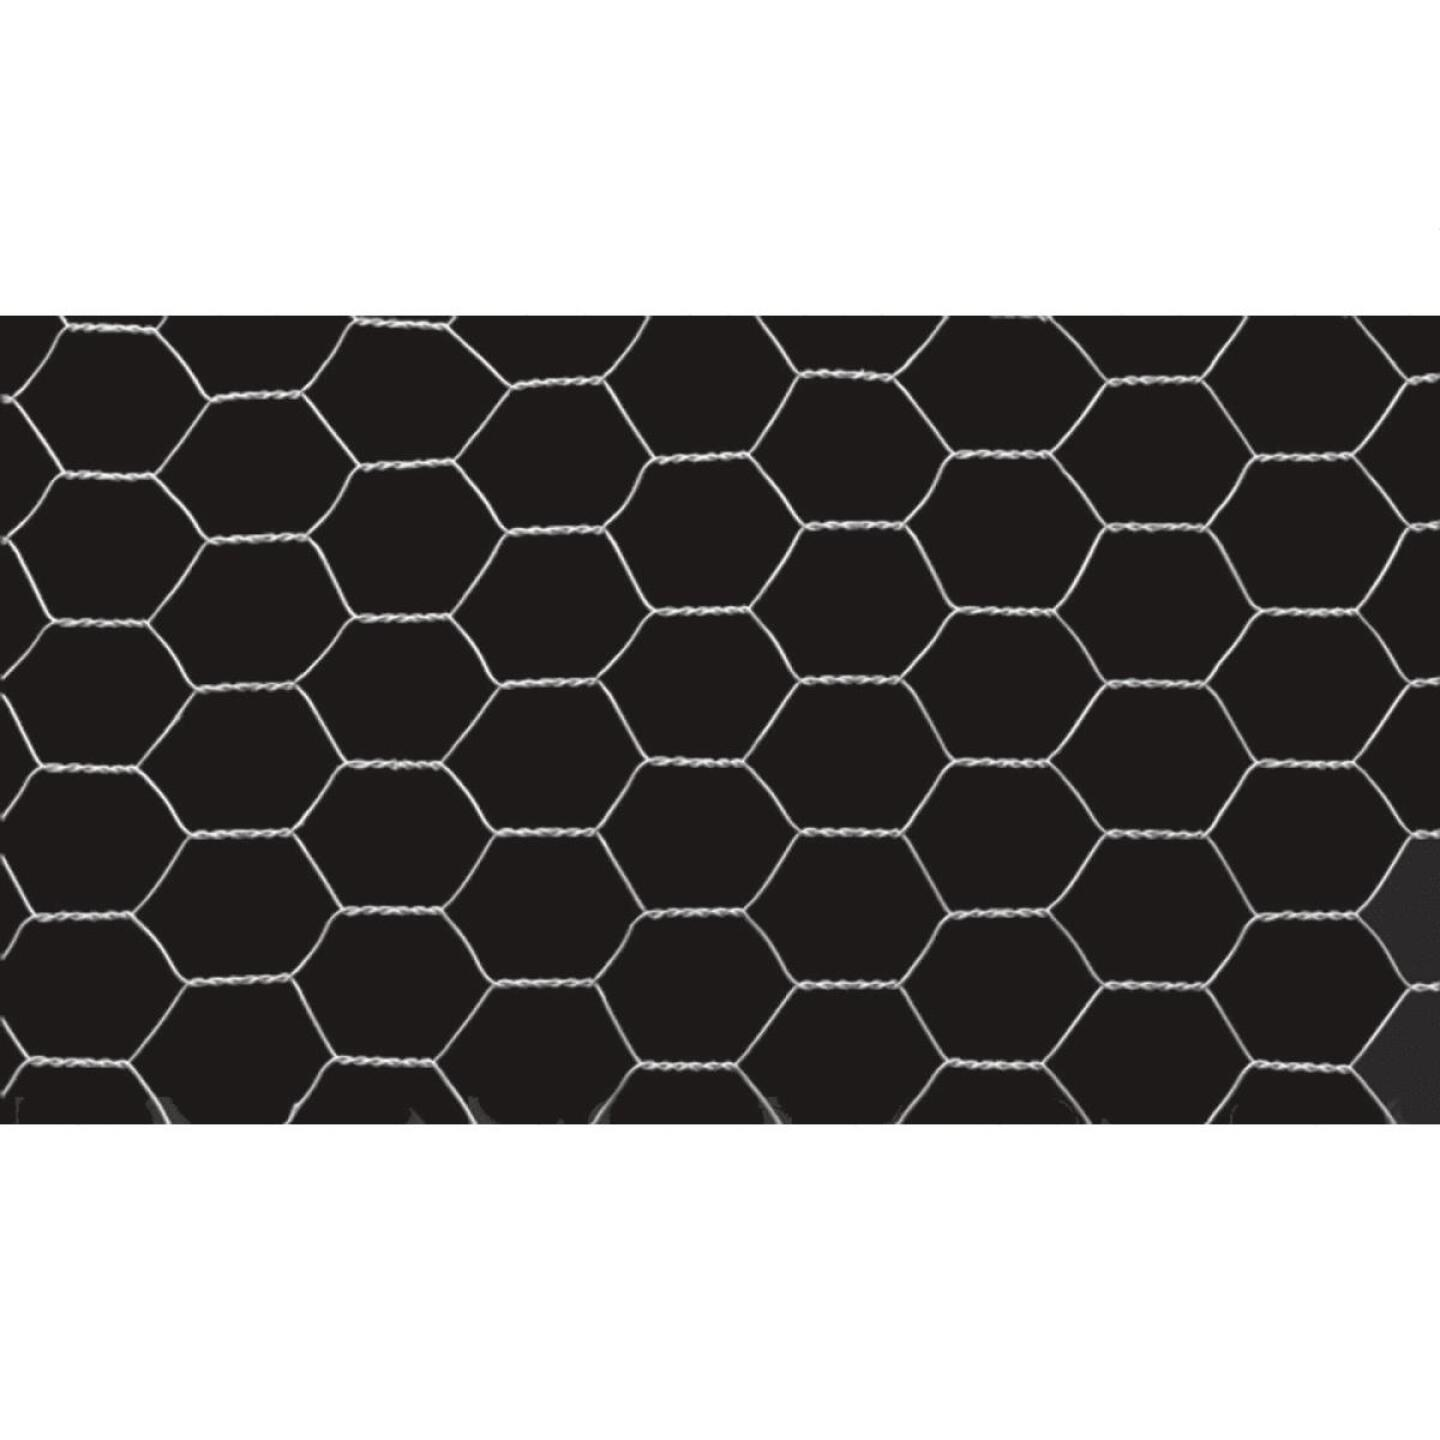 Do it 2 In. x 48 In. H. x 150 Ft. L. Hexagonal Wire Poultry Netting Image 2